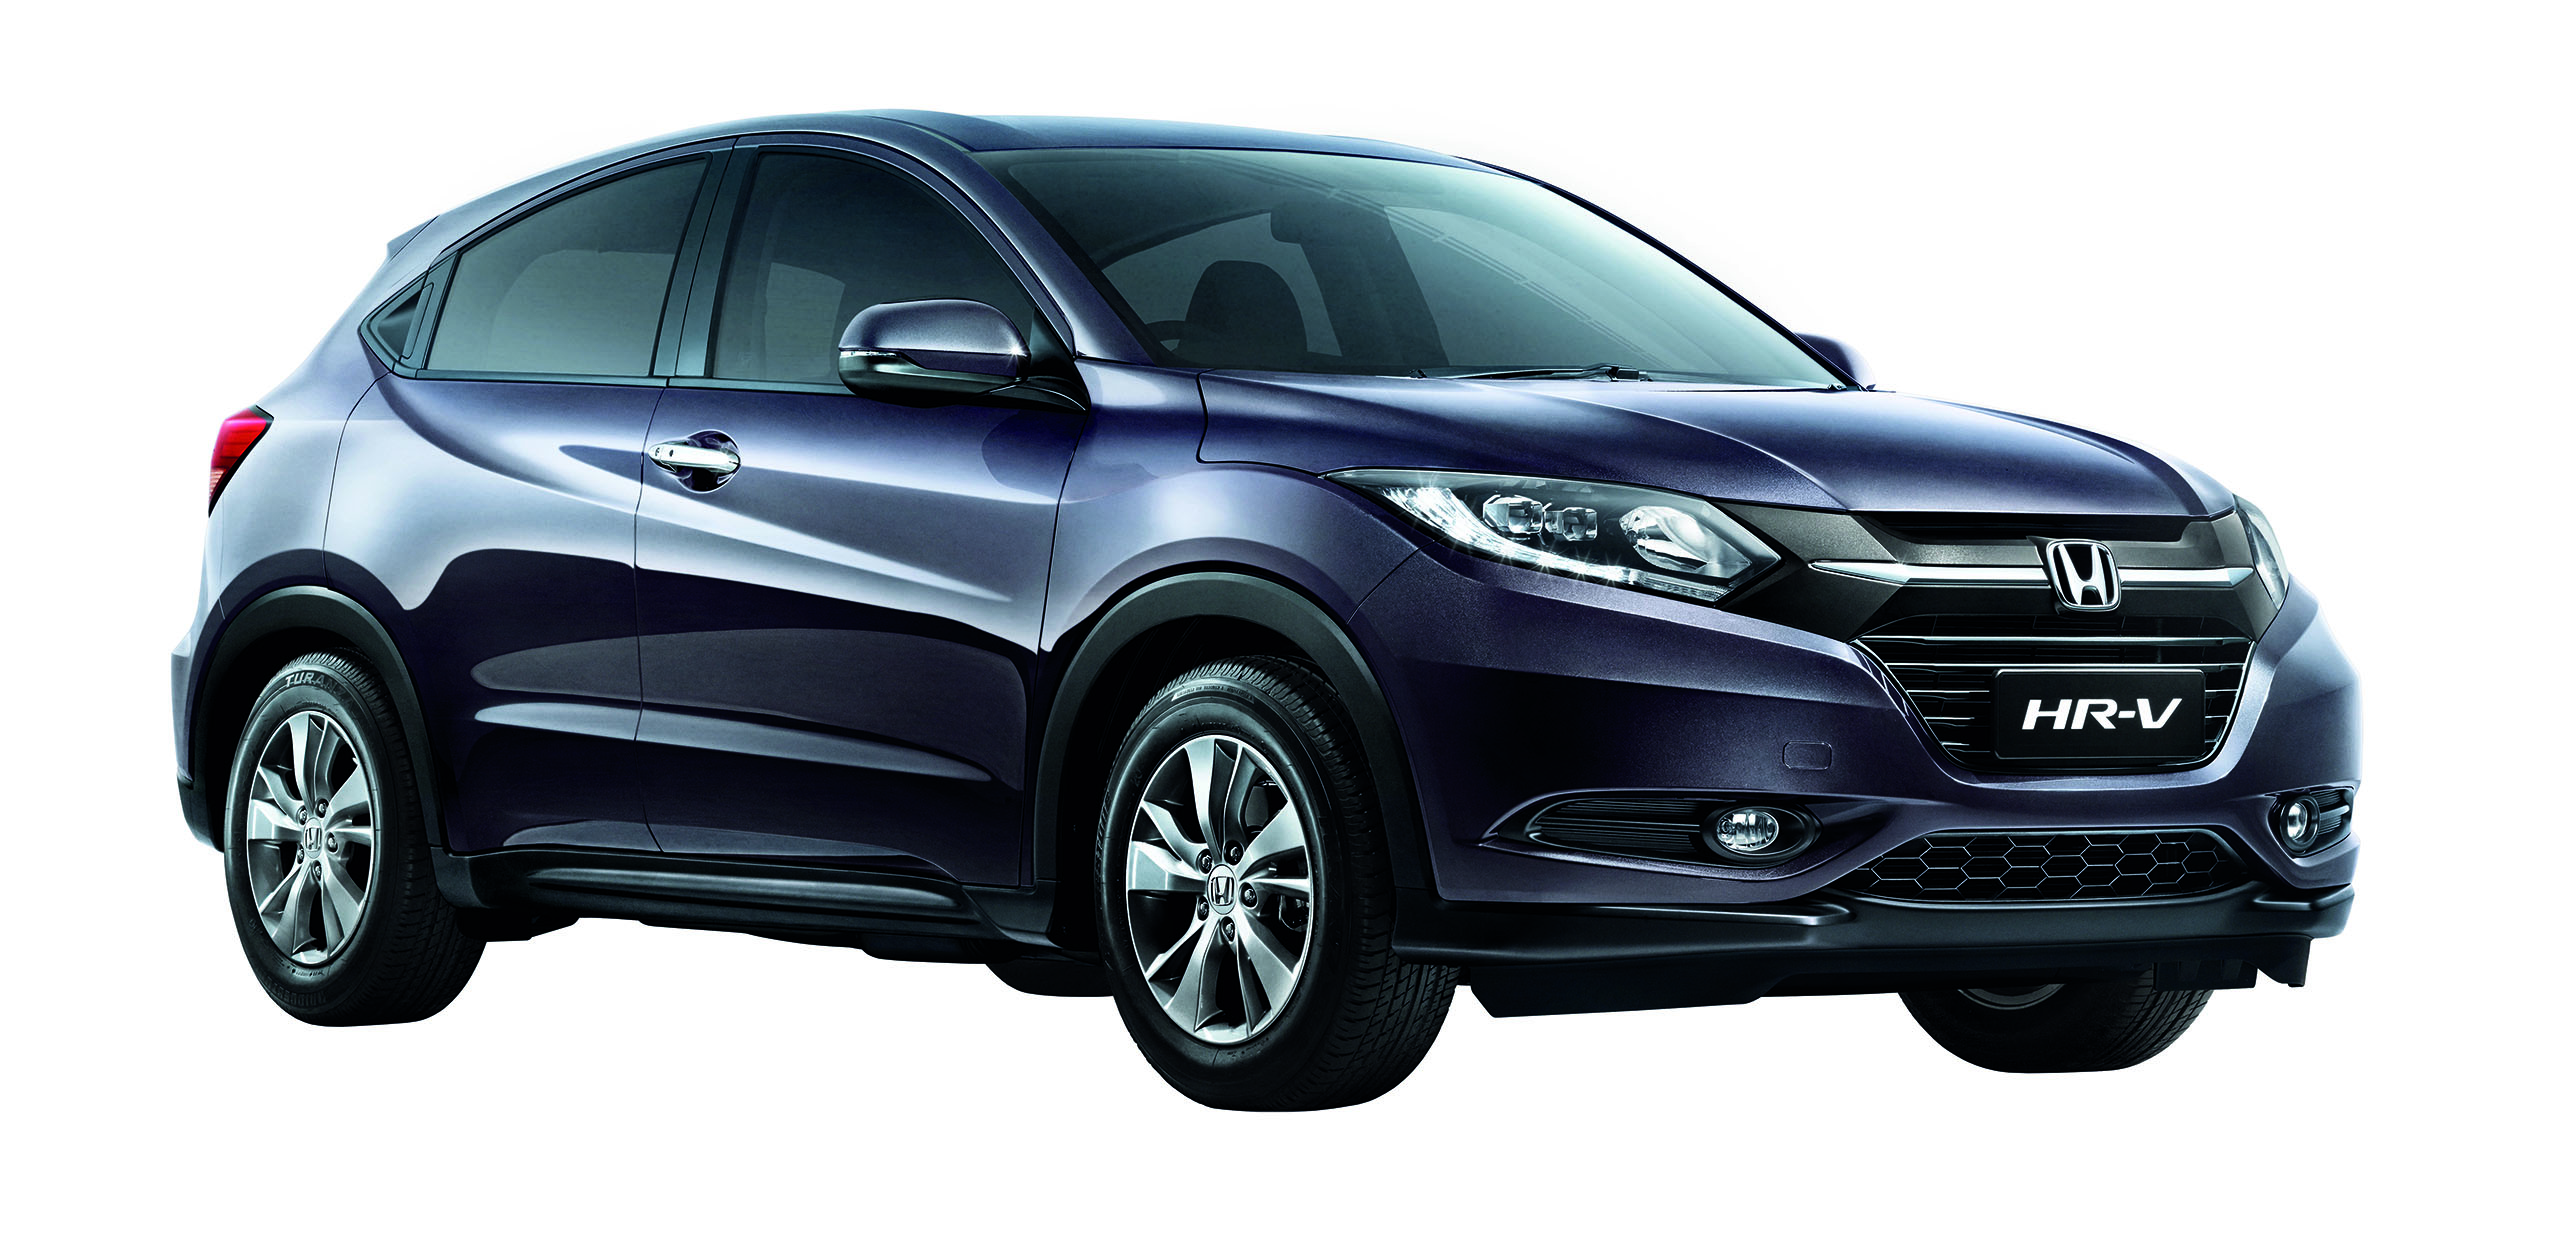 2015 honda hr v launched in malaysia from rm100k image 309598. Black Bedroom Furniture Sets. Home Design Ideas